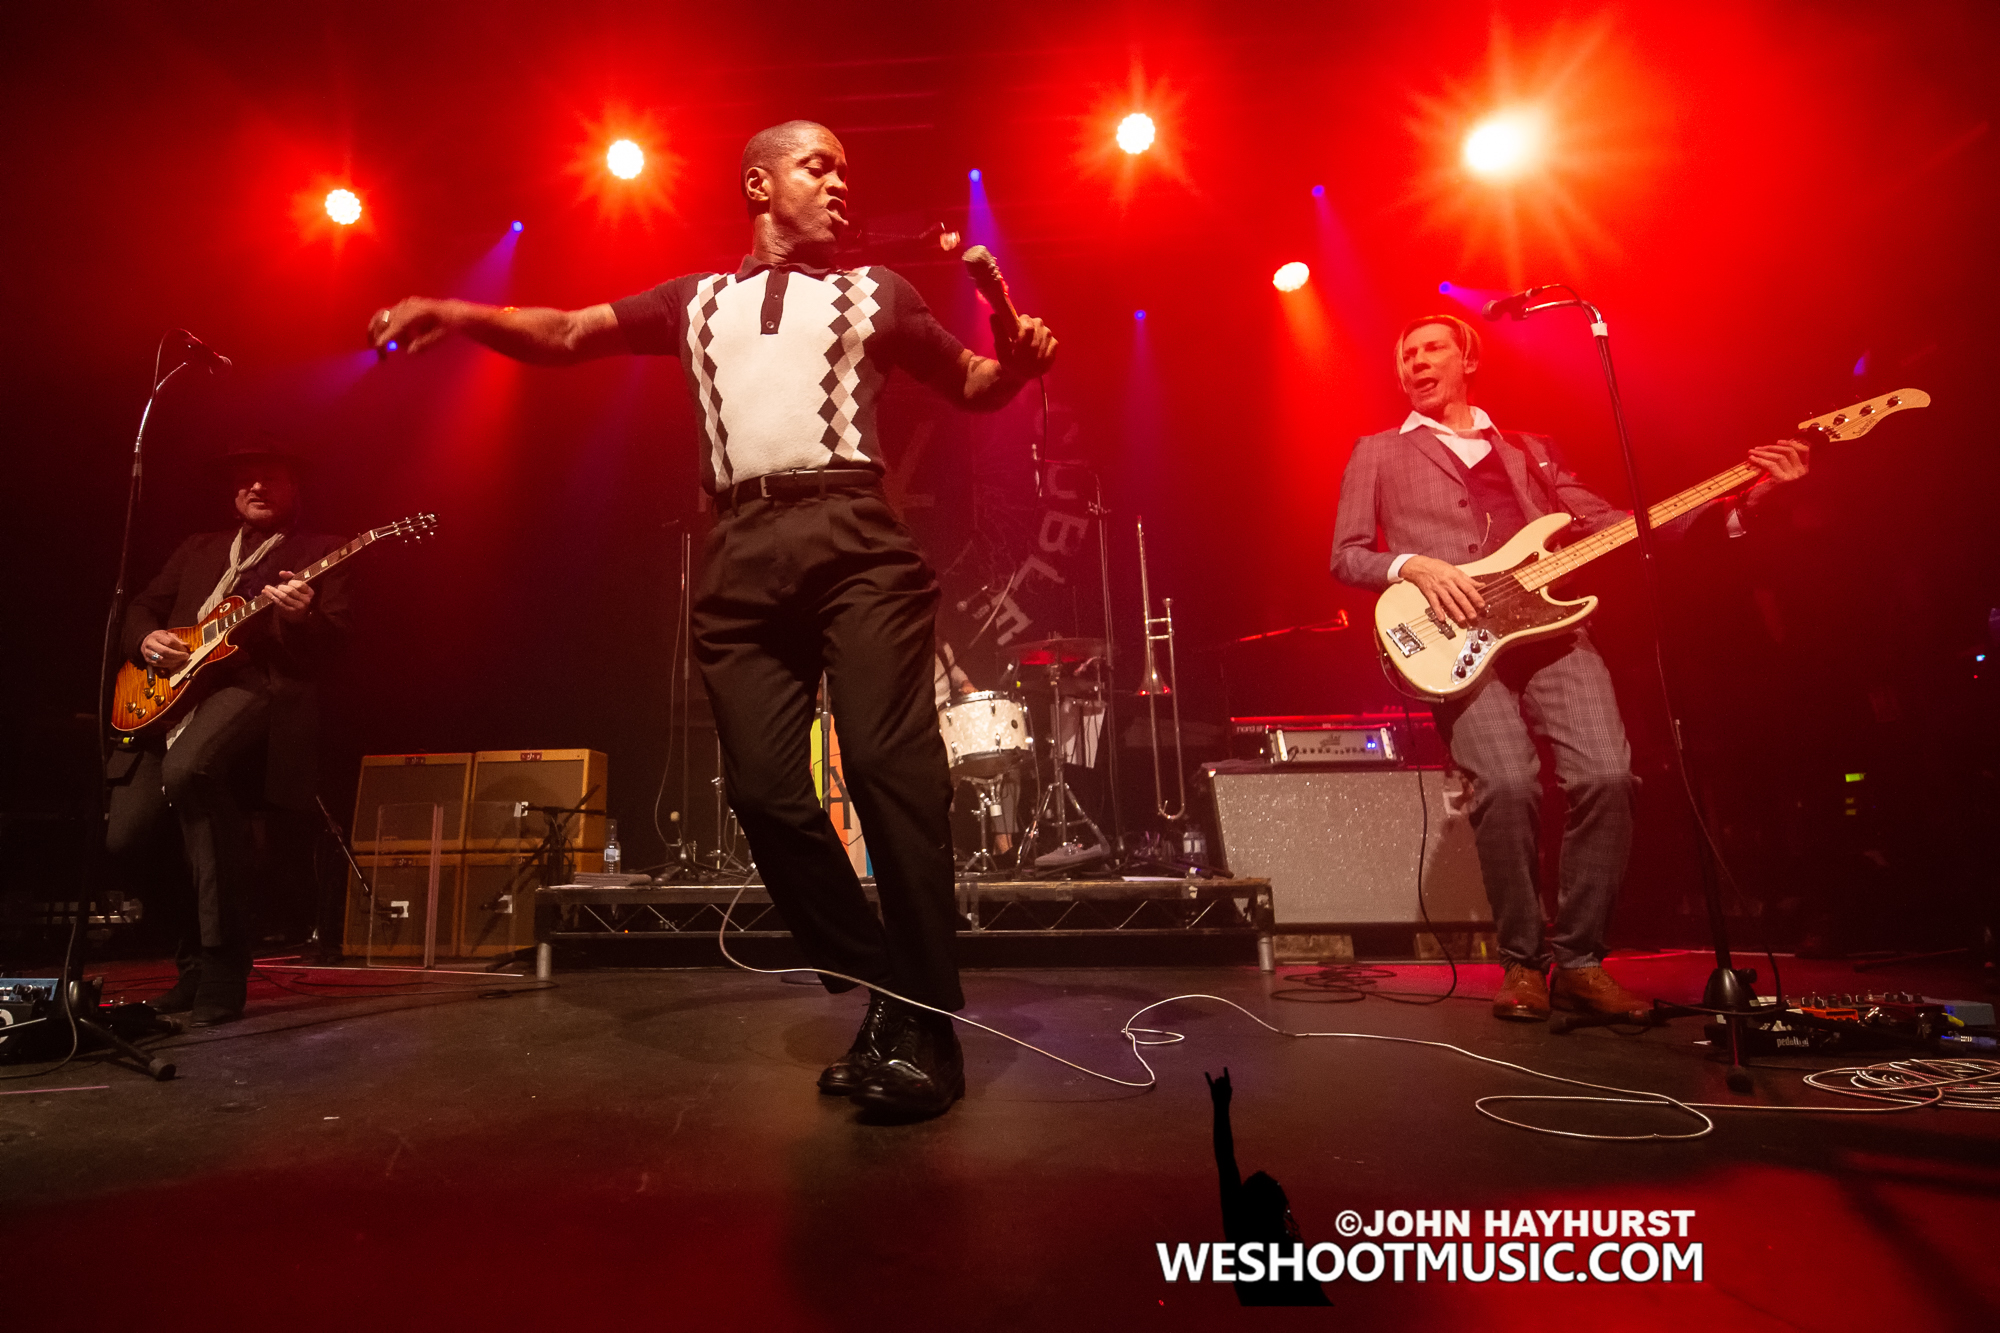 Gallery of Vintage Trouble at Manchester Academy 2